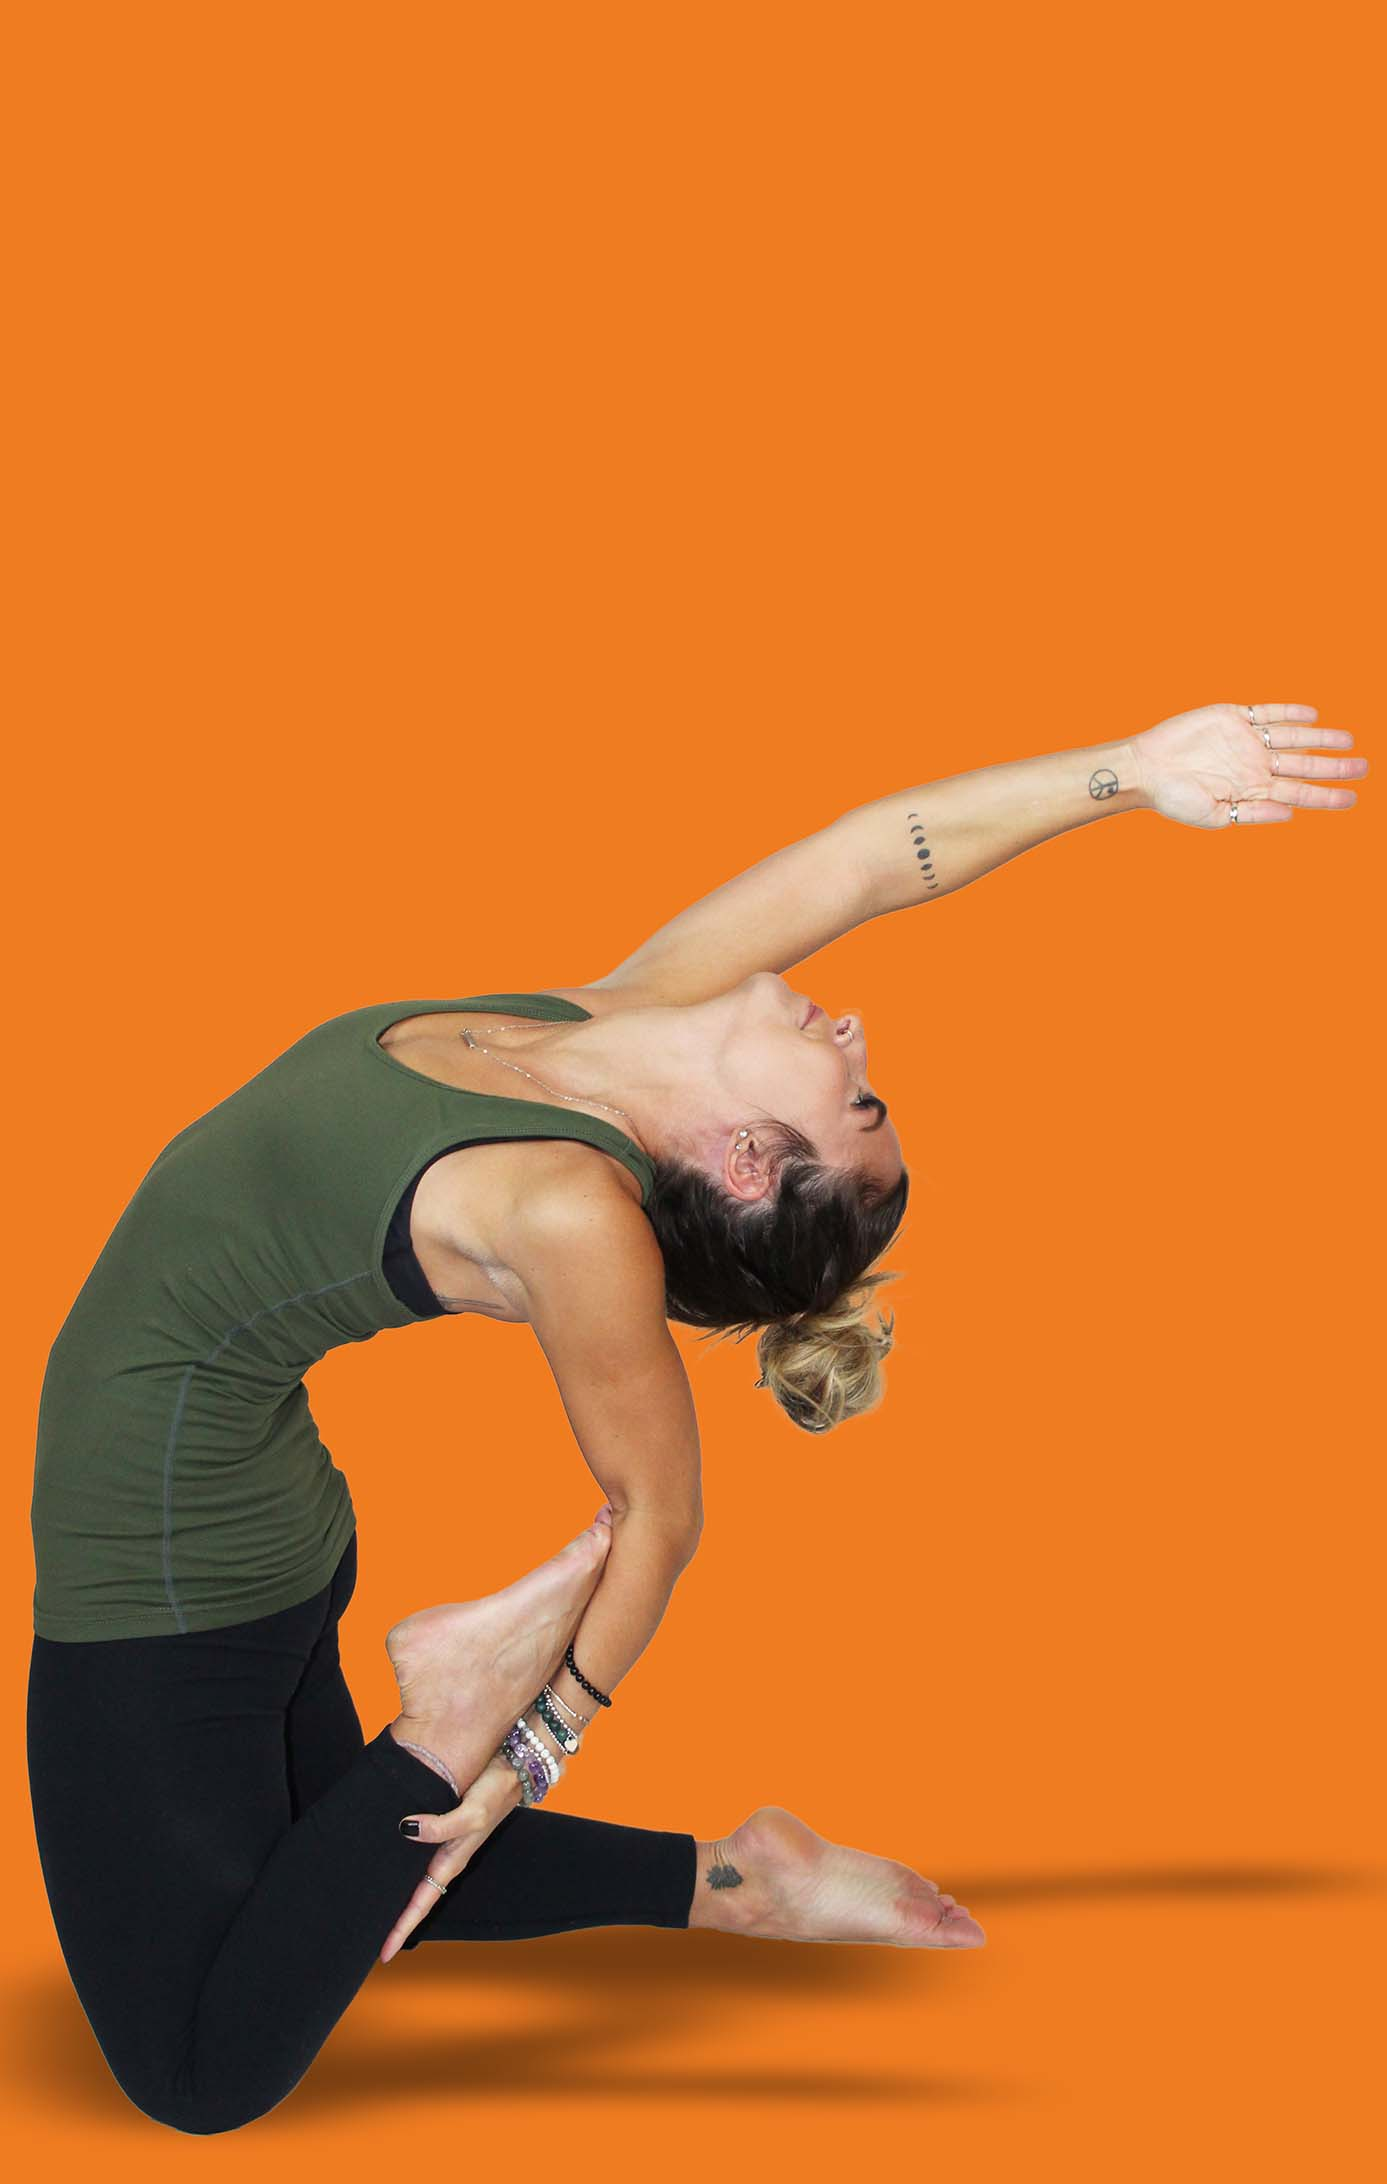 HOT YOGA  Reap the benefits of Hot Yoga and Infrared Heat by sweating out toxins, gaining flexibility & balance, improving cardiovascular health, relieving stress, reducing pain & stiffness, burning calories, and so much more! We have classes suitable for all levels.